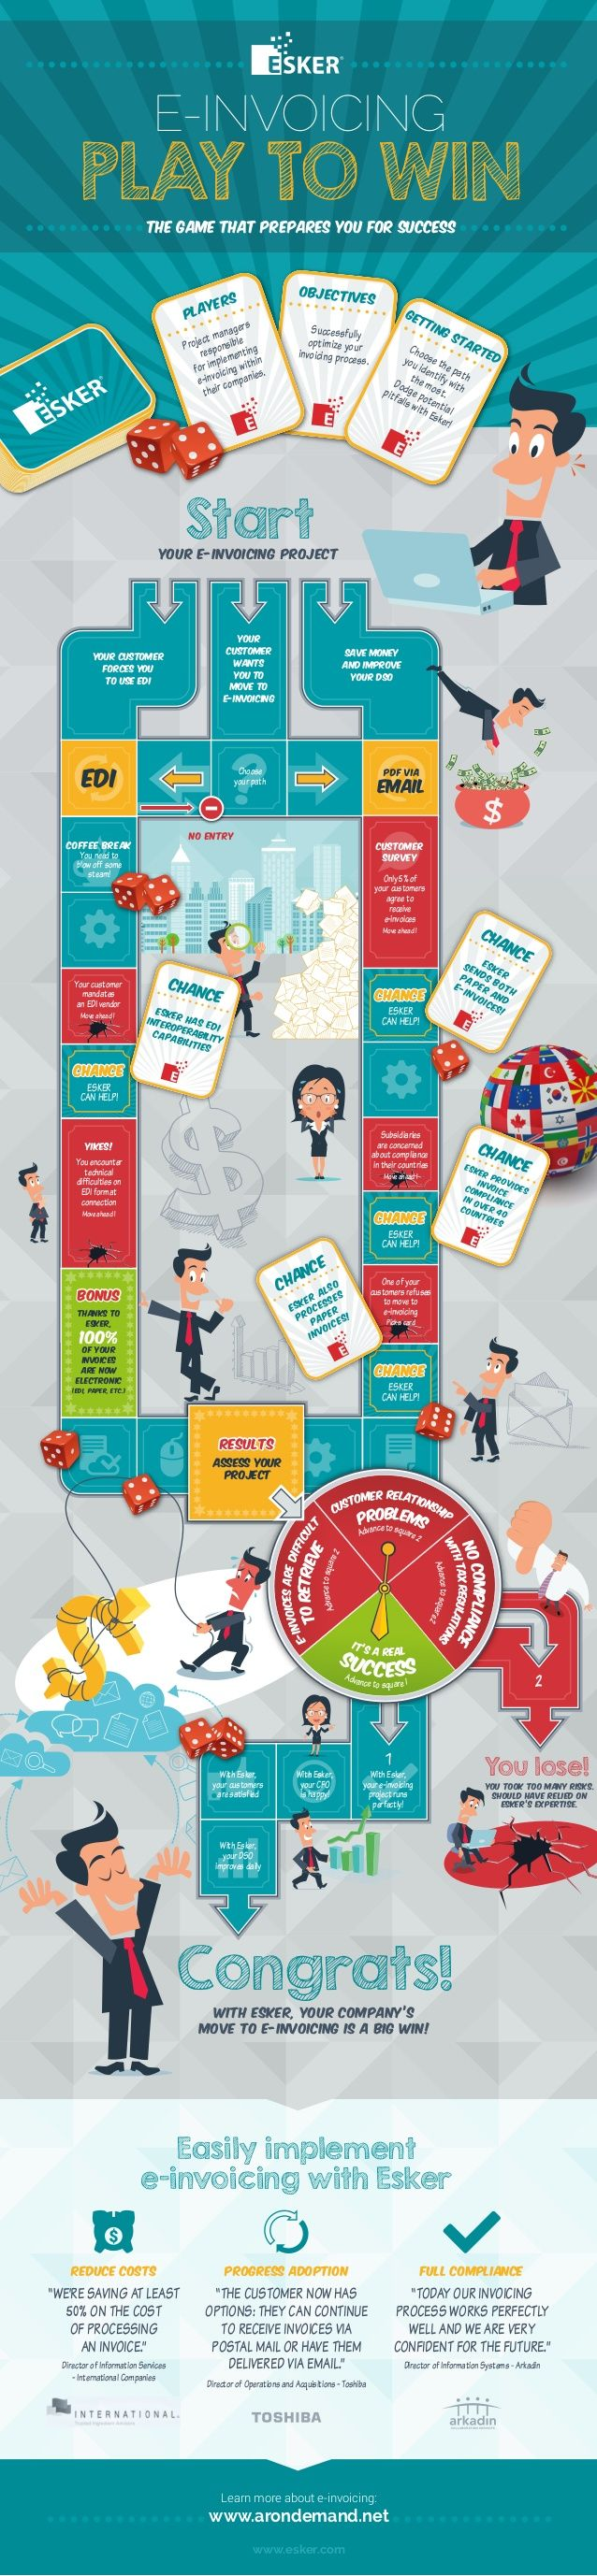 [Infographic] Your E-Invoicing Project